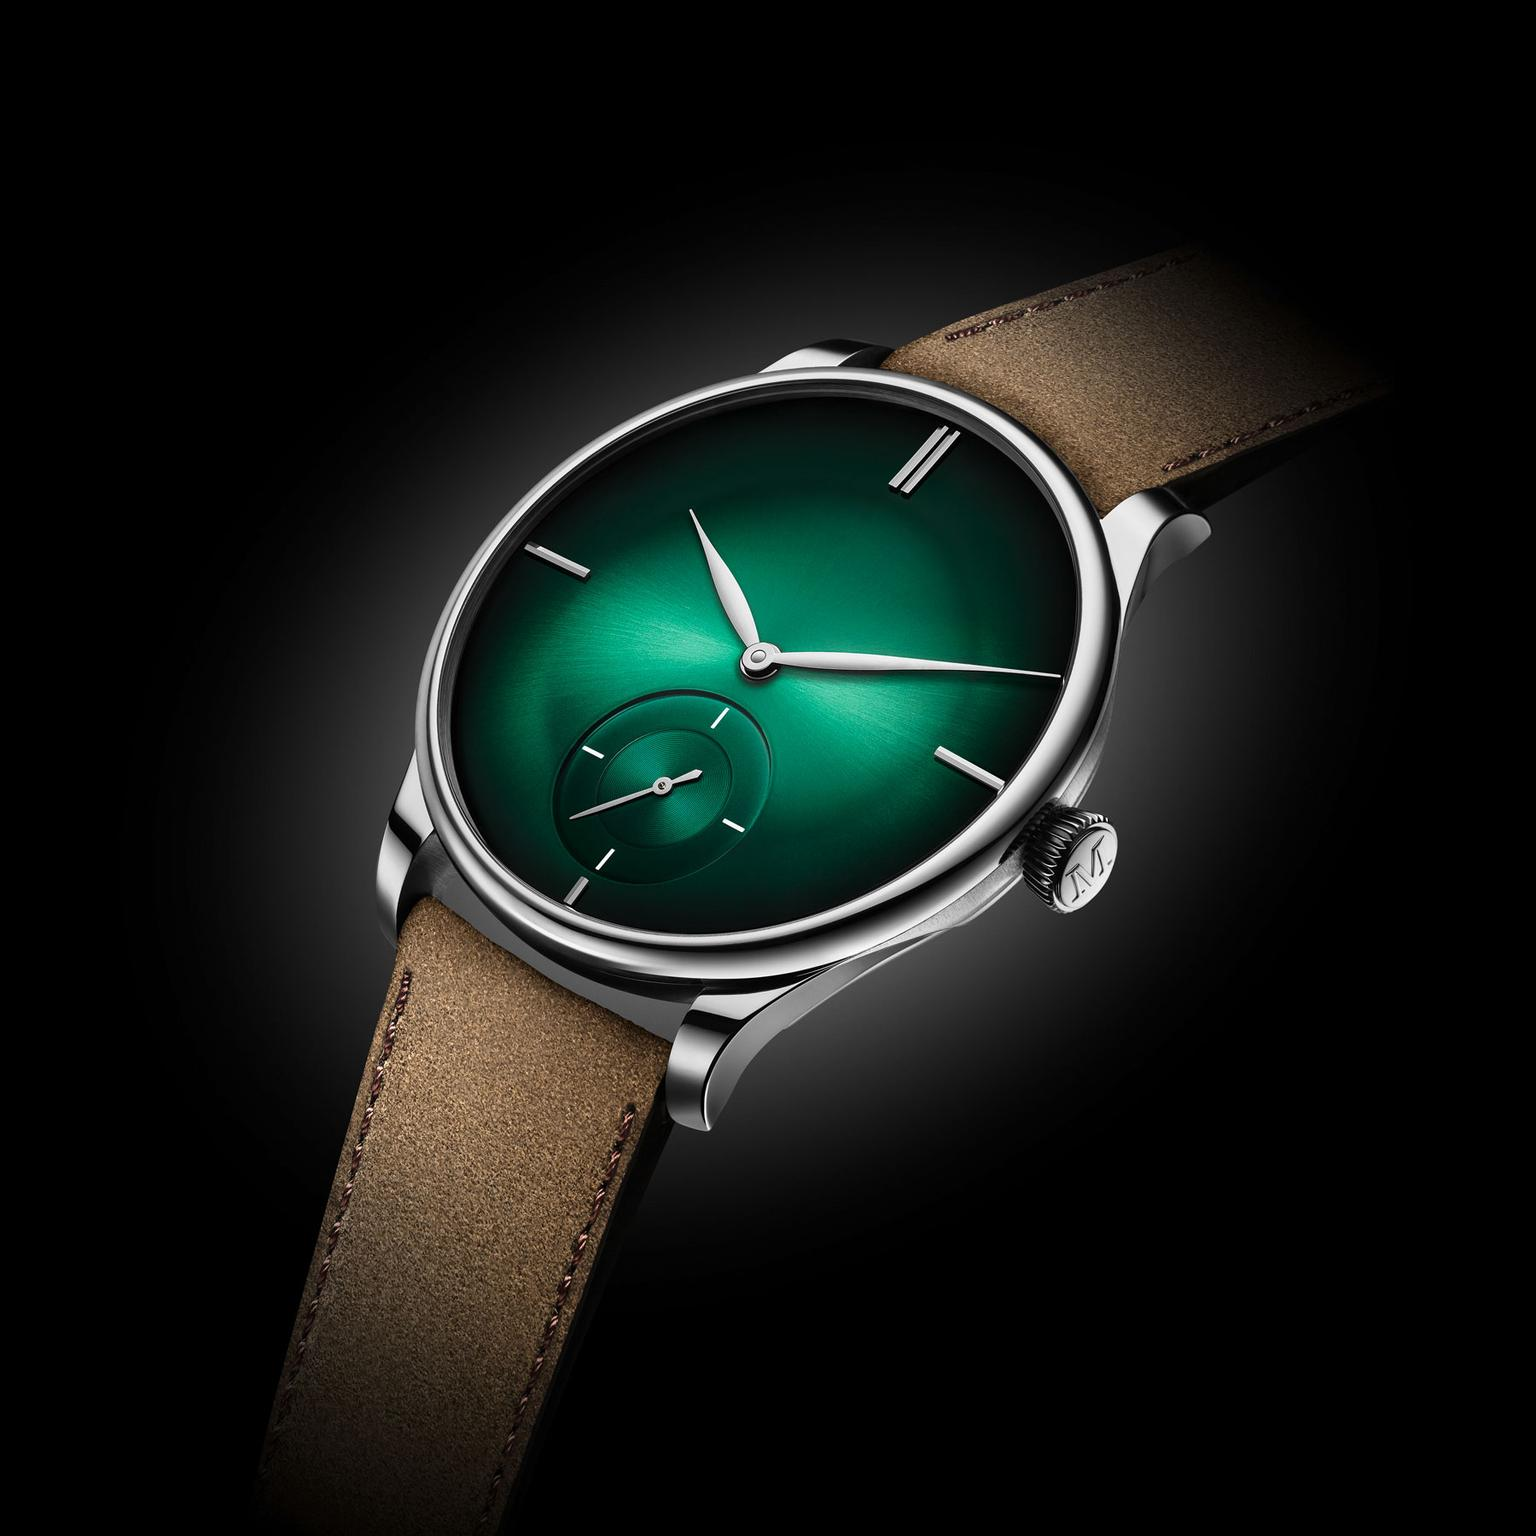 H. Moser & Cie Venturer Small Seconds XL Purity Cosmic Green watch